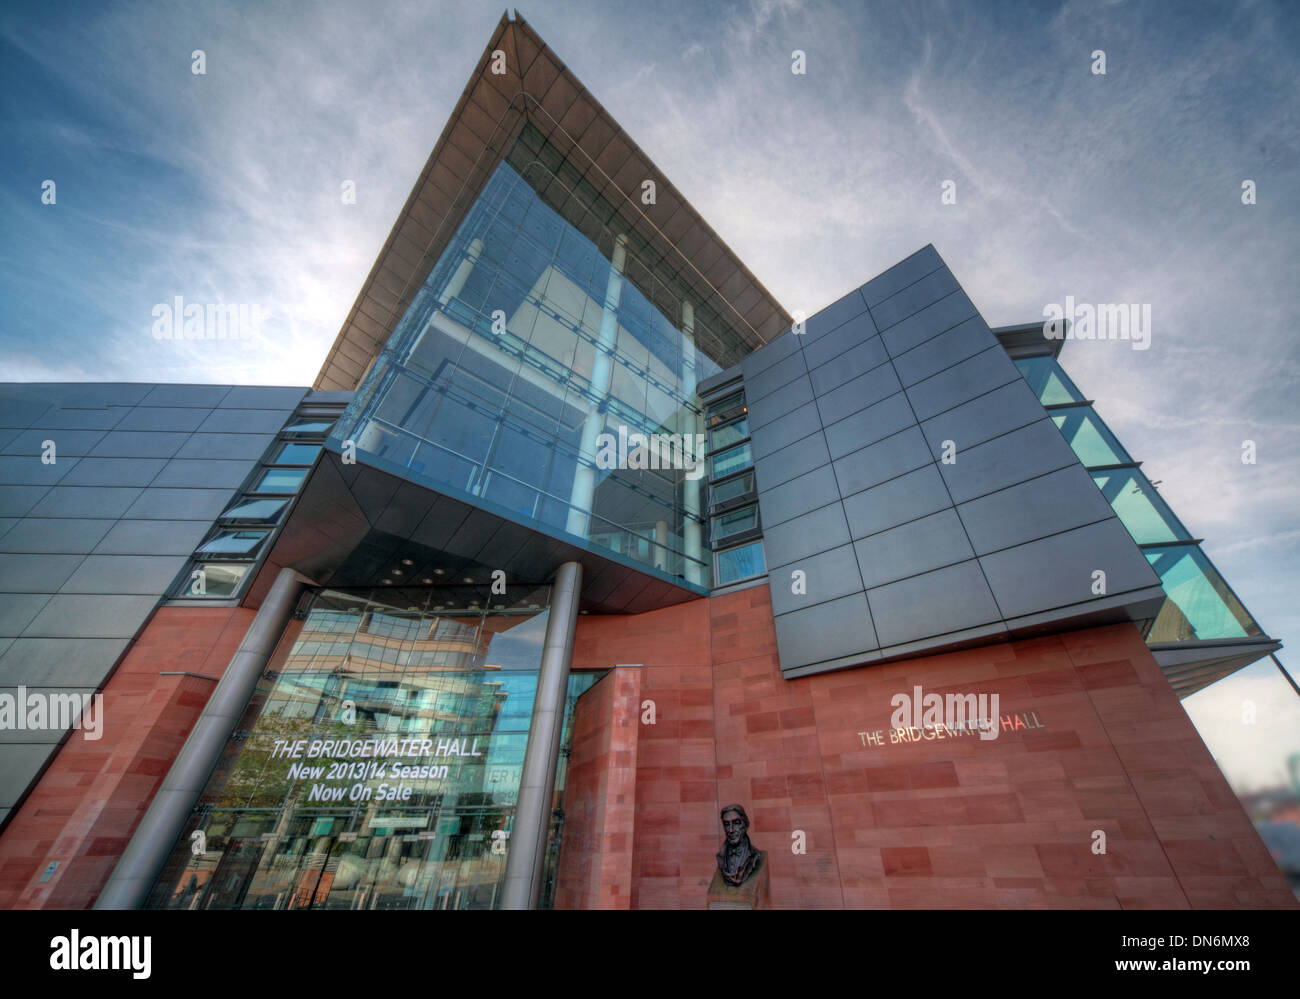 Bridgewater Hall international concert venue in Manchester city centre England UK - Stock Image